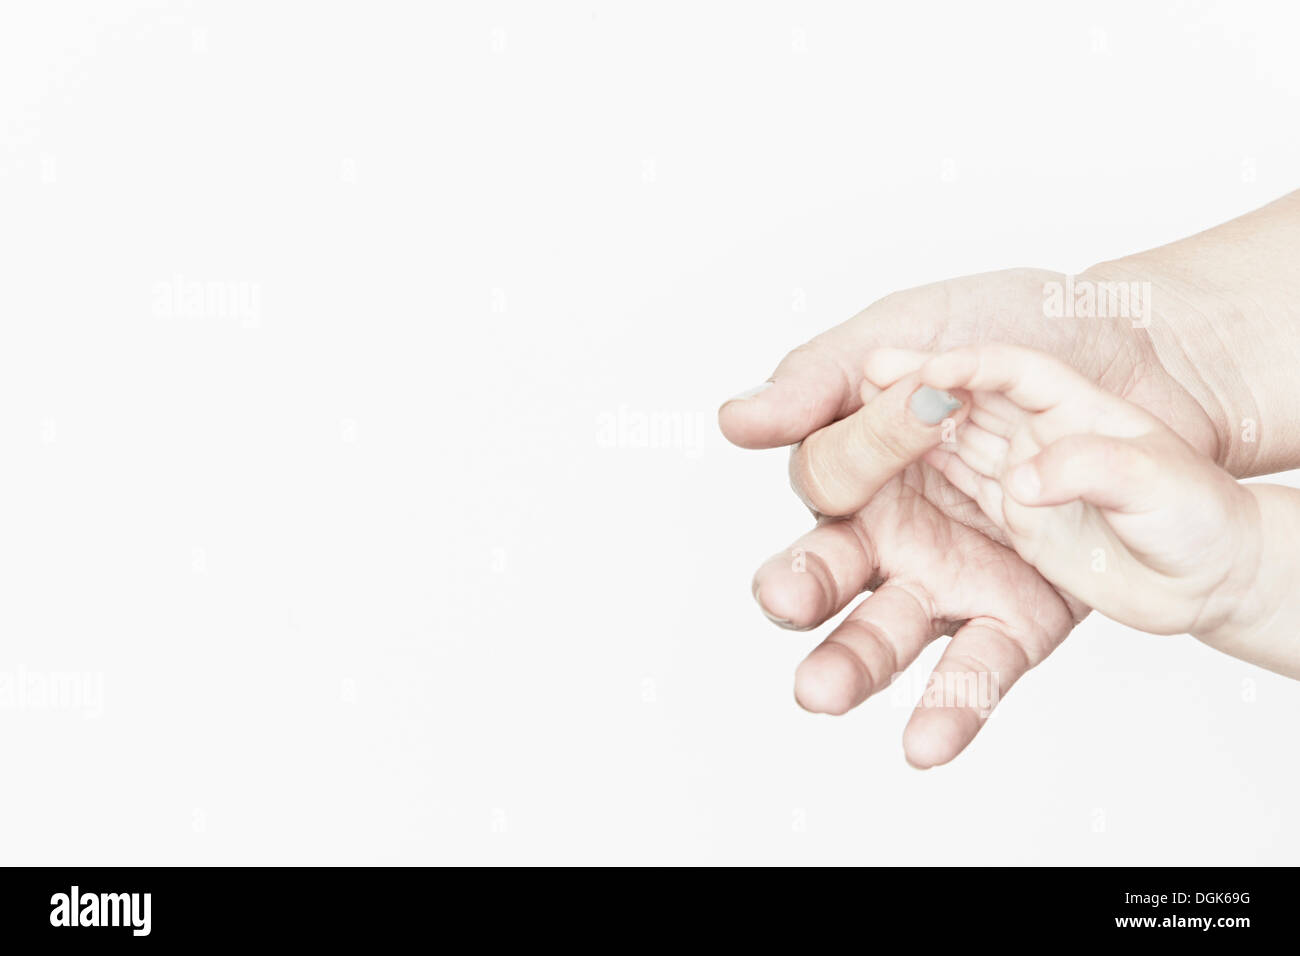 Baby's hand amplexicaule mother's finger Photo Stock